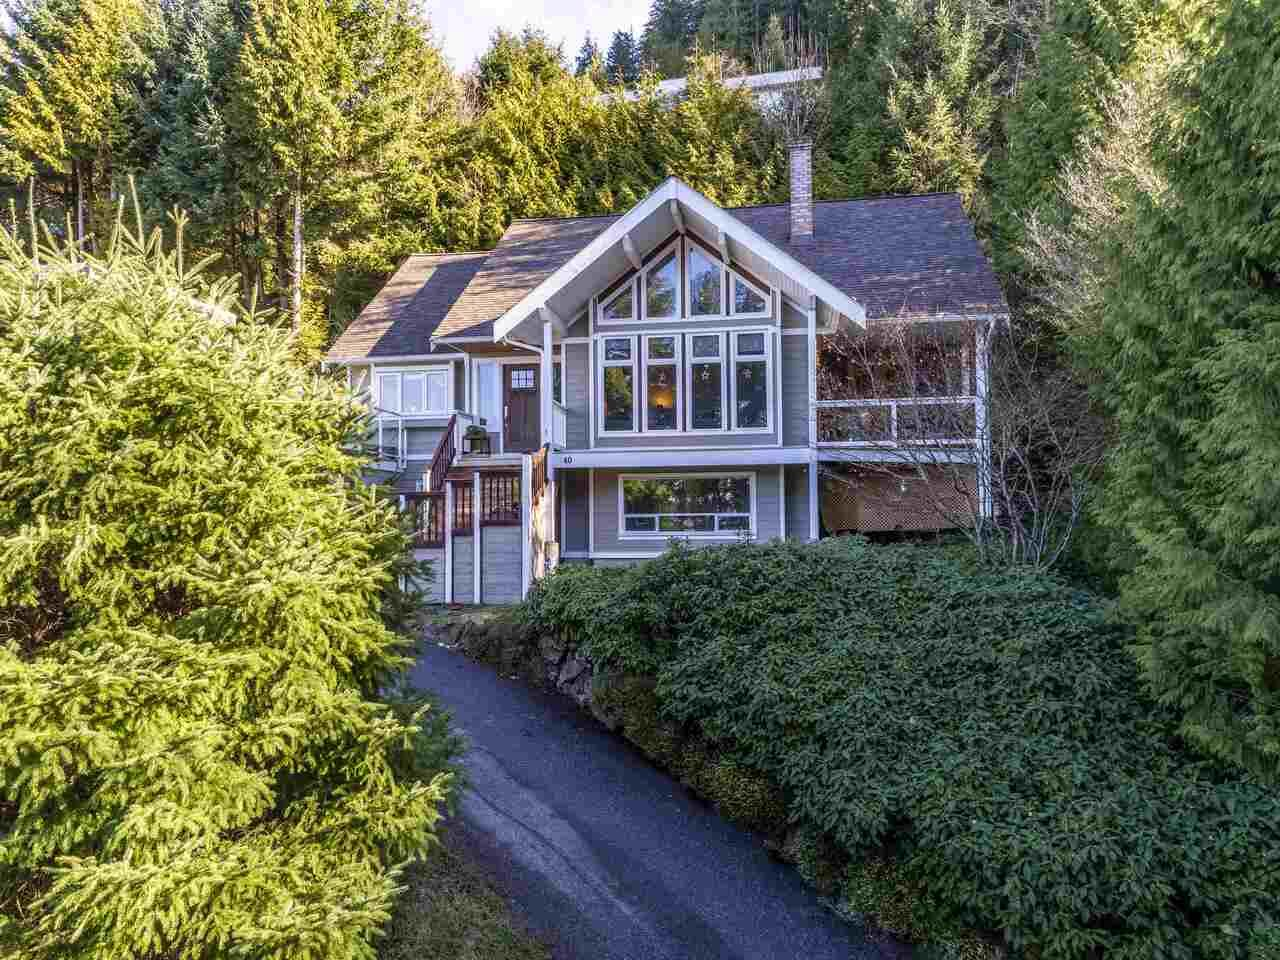 Main Photo: 40 KELVIN GROVE Way: Lions Bay House for sale (West Vancouver)  : MLS®# R2546369